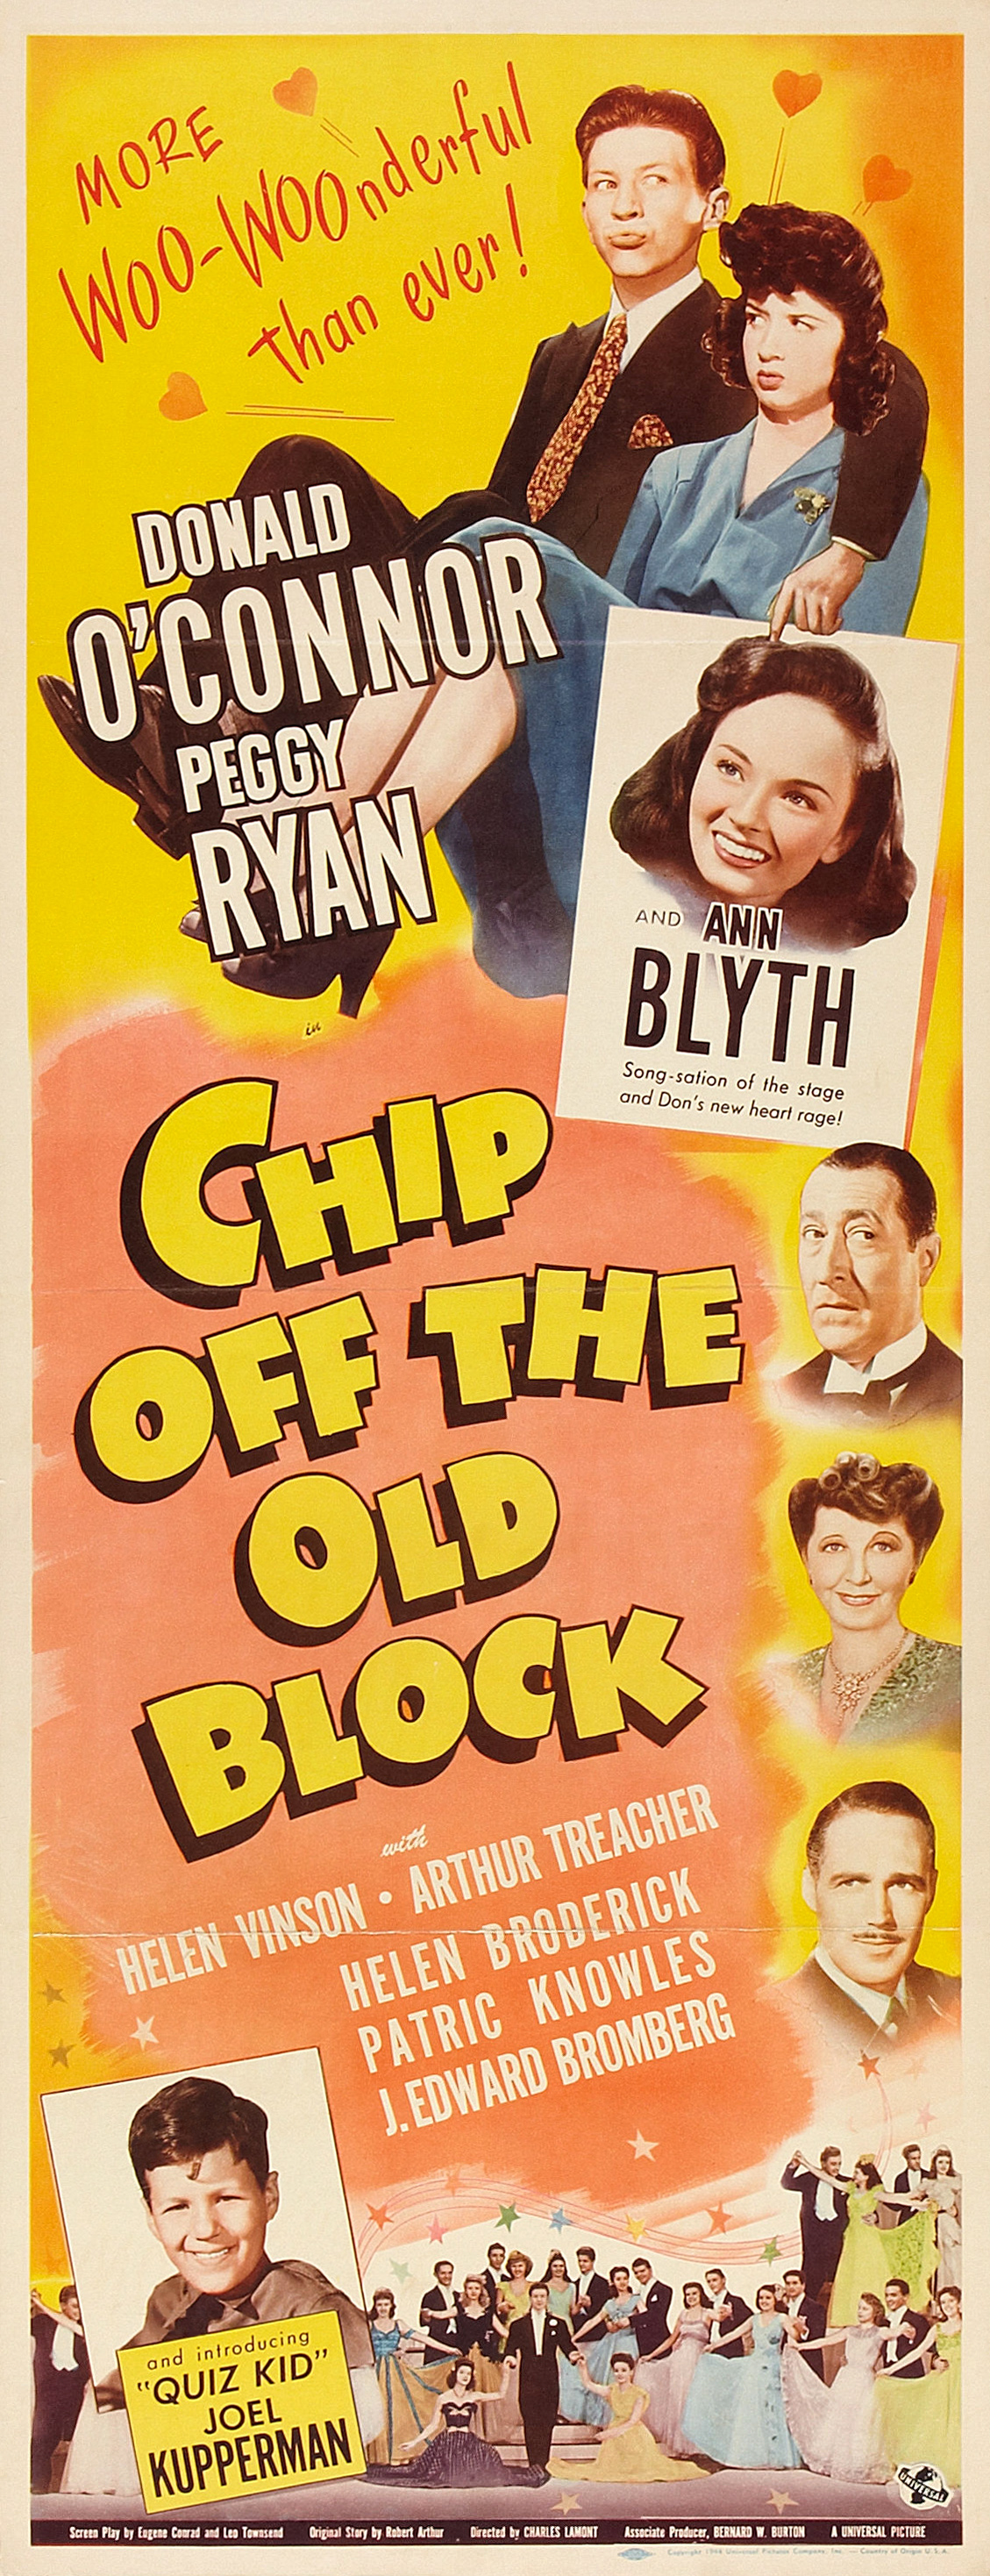 Chip Off the Old Block (1944)